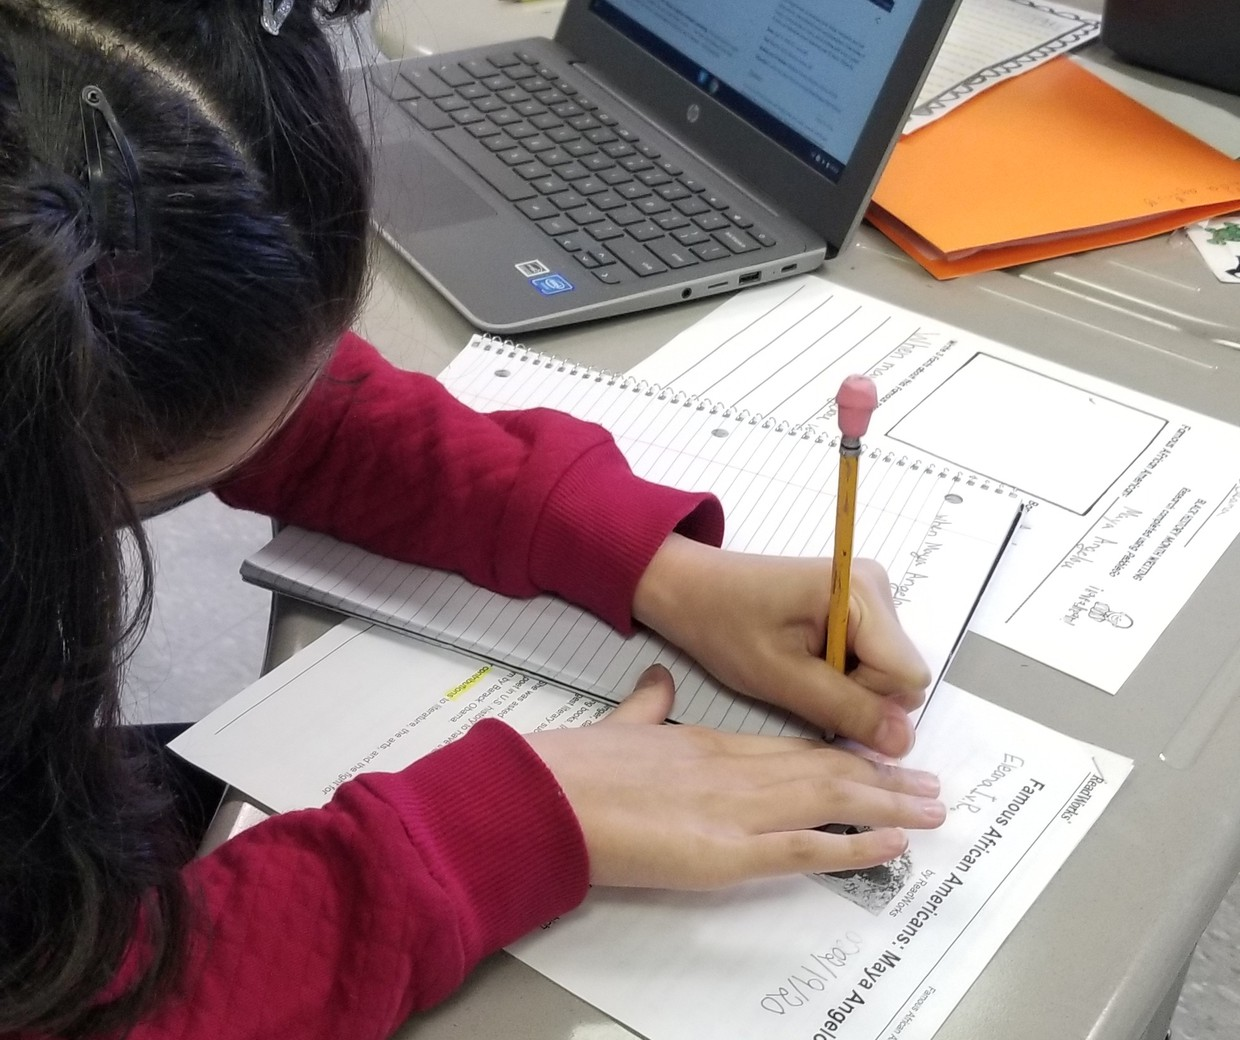 Student working at a desk.